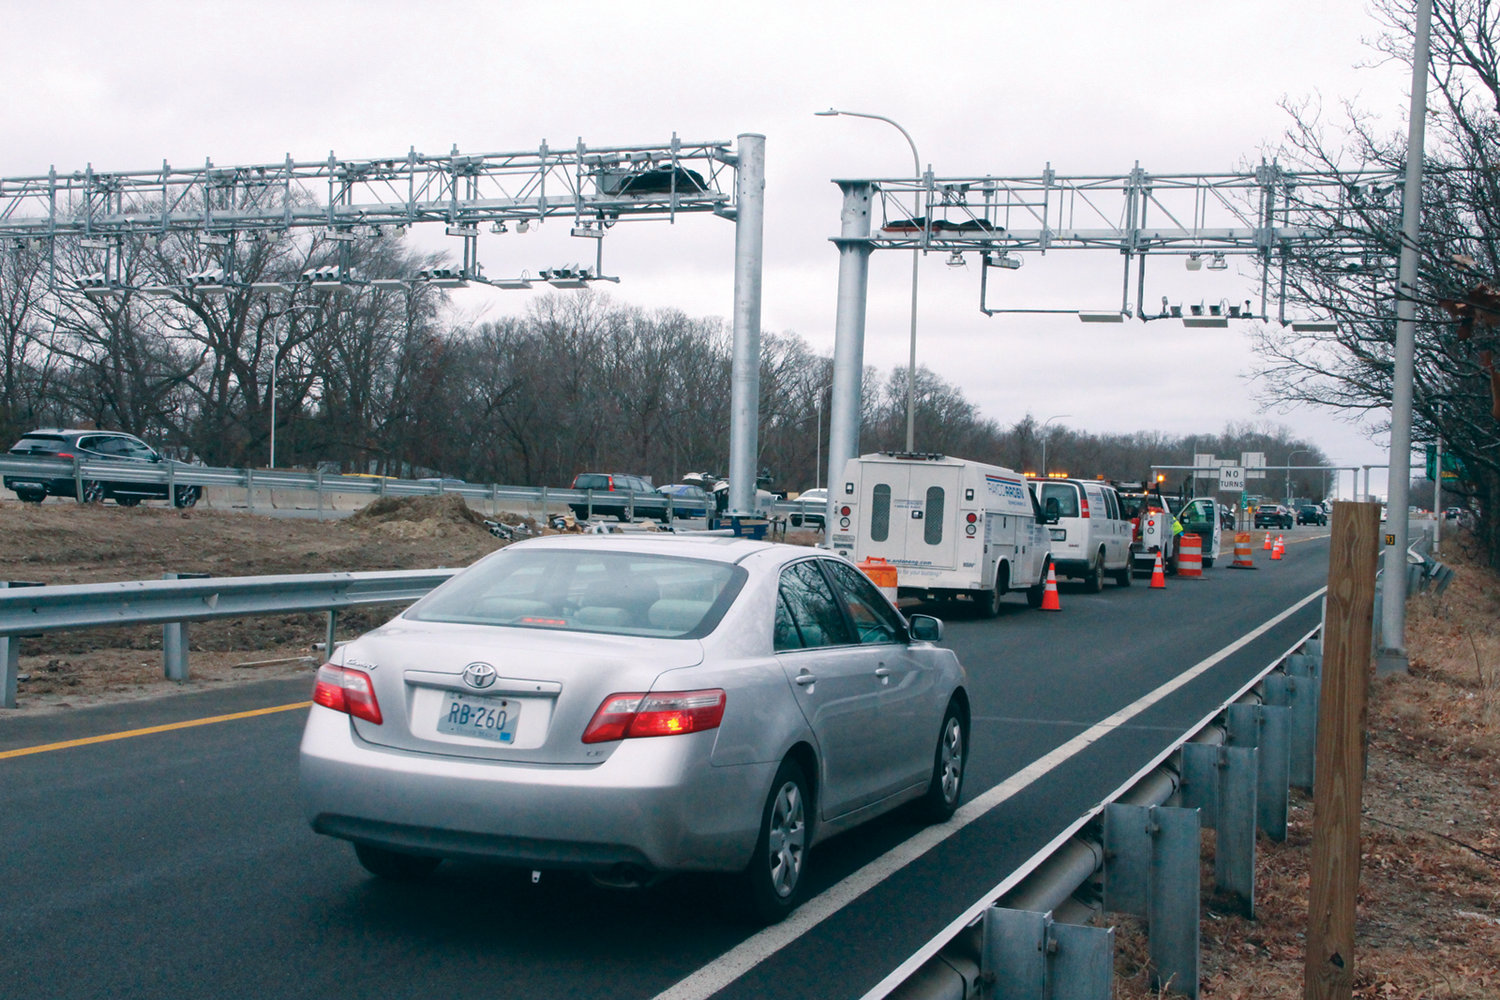 EYES ON THE ROAD: Gantries designed to toll trucks are being erected on Interstate 95 and at the Centerville Road on-ramp to northbound traffic in Warwick. The statewide system of 12 gantries is to be completed and operational by June 2020.